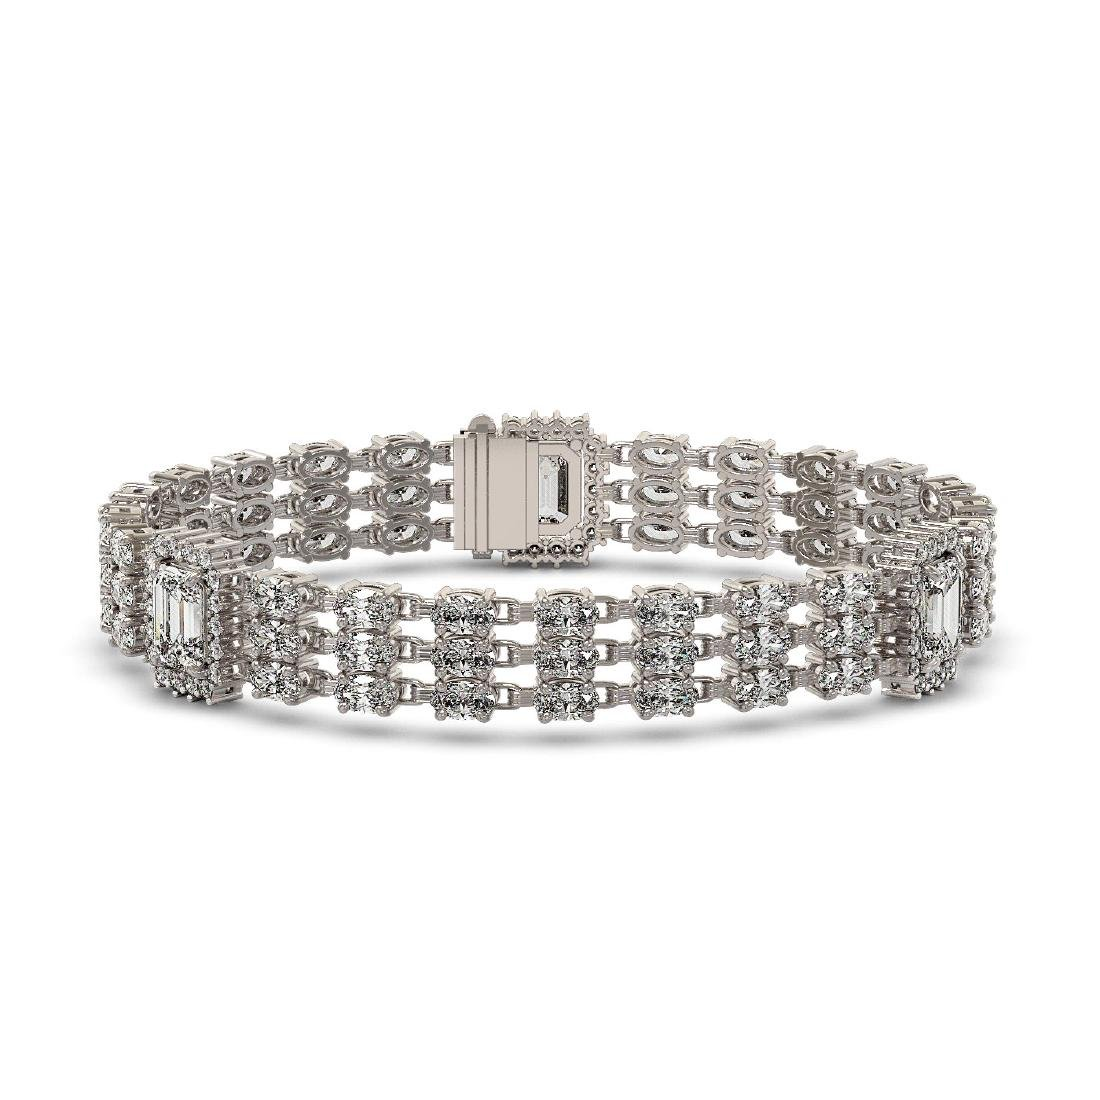 18.96 ctw Emerald Cut & Oval Diamond Bracelet 18K White - 2